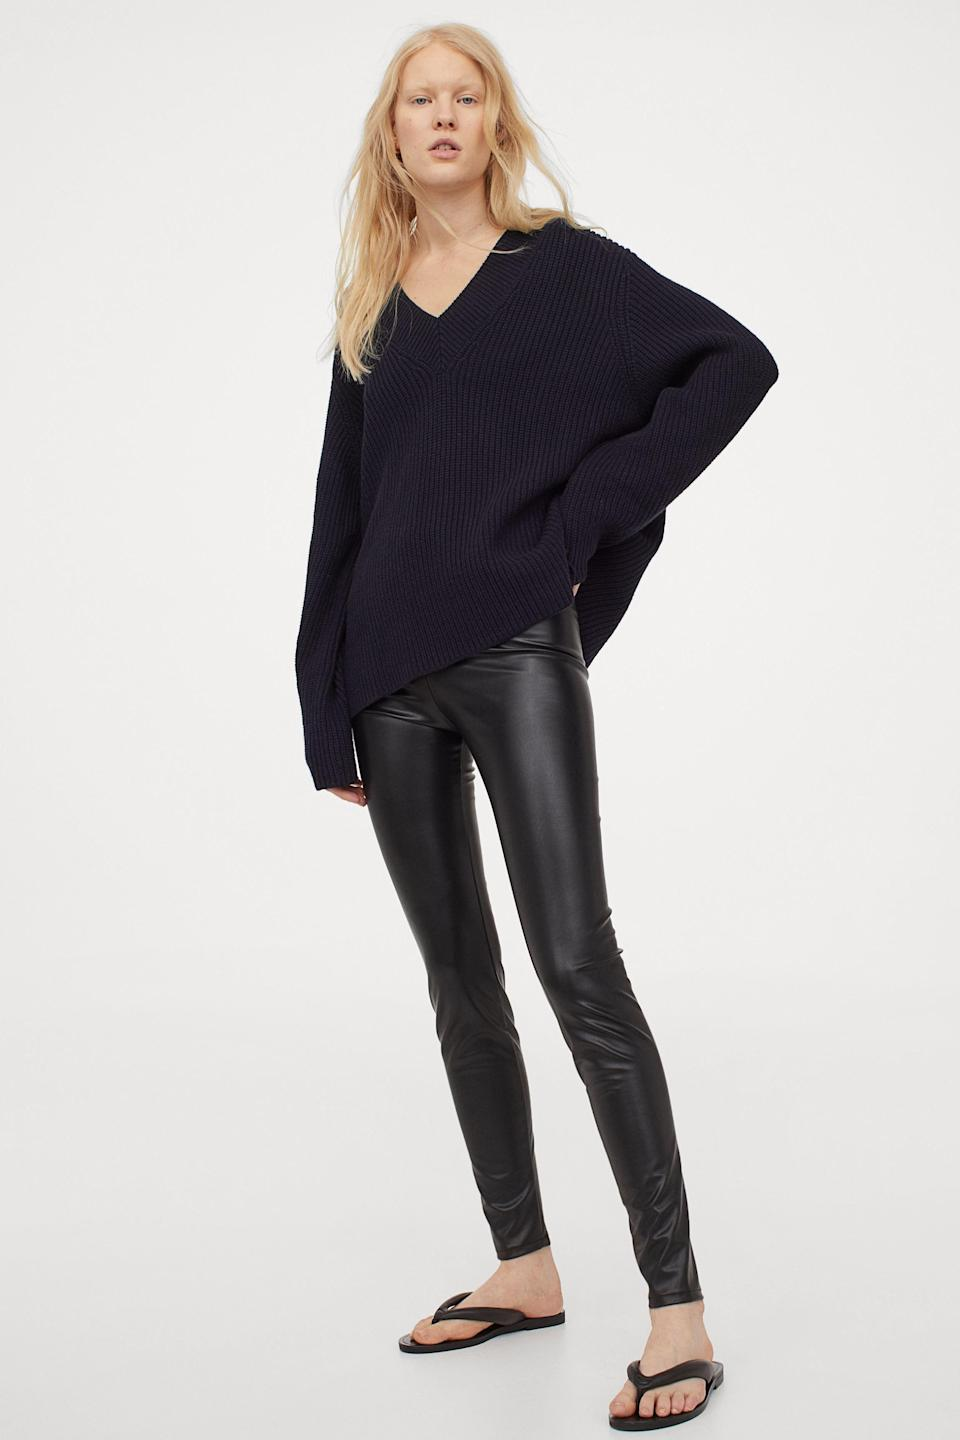 """<p><strong>H&M</strong></p><p>hm.com</p><p><strong>$24.99</strong></p><p><a href=""""https://go.redirectingat.com?id=74968X1596630&url=https%3A%2F%2Fwww2.hm.com%2Fen_us%2Fproductpage.0918892001.html&sref=https%3A%2F%2Fwww.marieclaire.com%2Ffashion%2Fg34437532%2Fbest-leather-leggings%2F"""" rel=""""nofollow noopener"""" target=""""_blank"""" data-ylk=""""slk:SHOP IT"""" class=""""link rapid-noclick-resp"""">SHOP IT</a></p><p>Leather leggings intrigue you, but you're not quite sure if you <em>love</em> them yet. Start off with a budget-friendly pair like this one from H&M and go from there.</p>"""